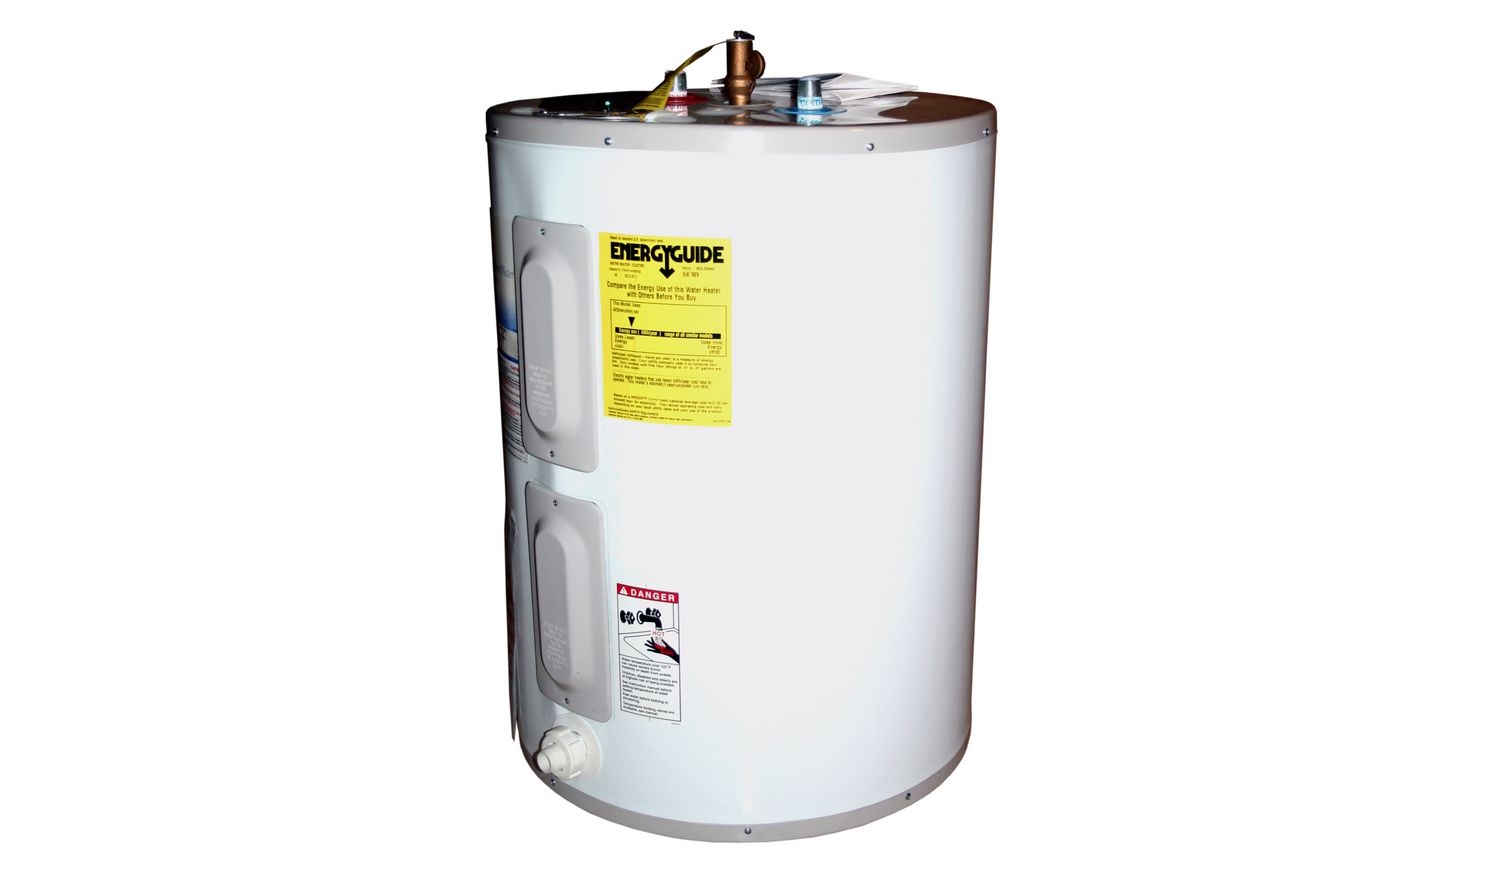 Clean Hot Water Heater 67